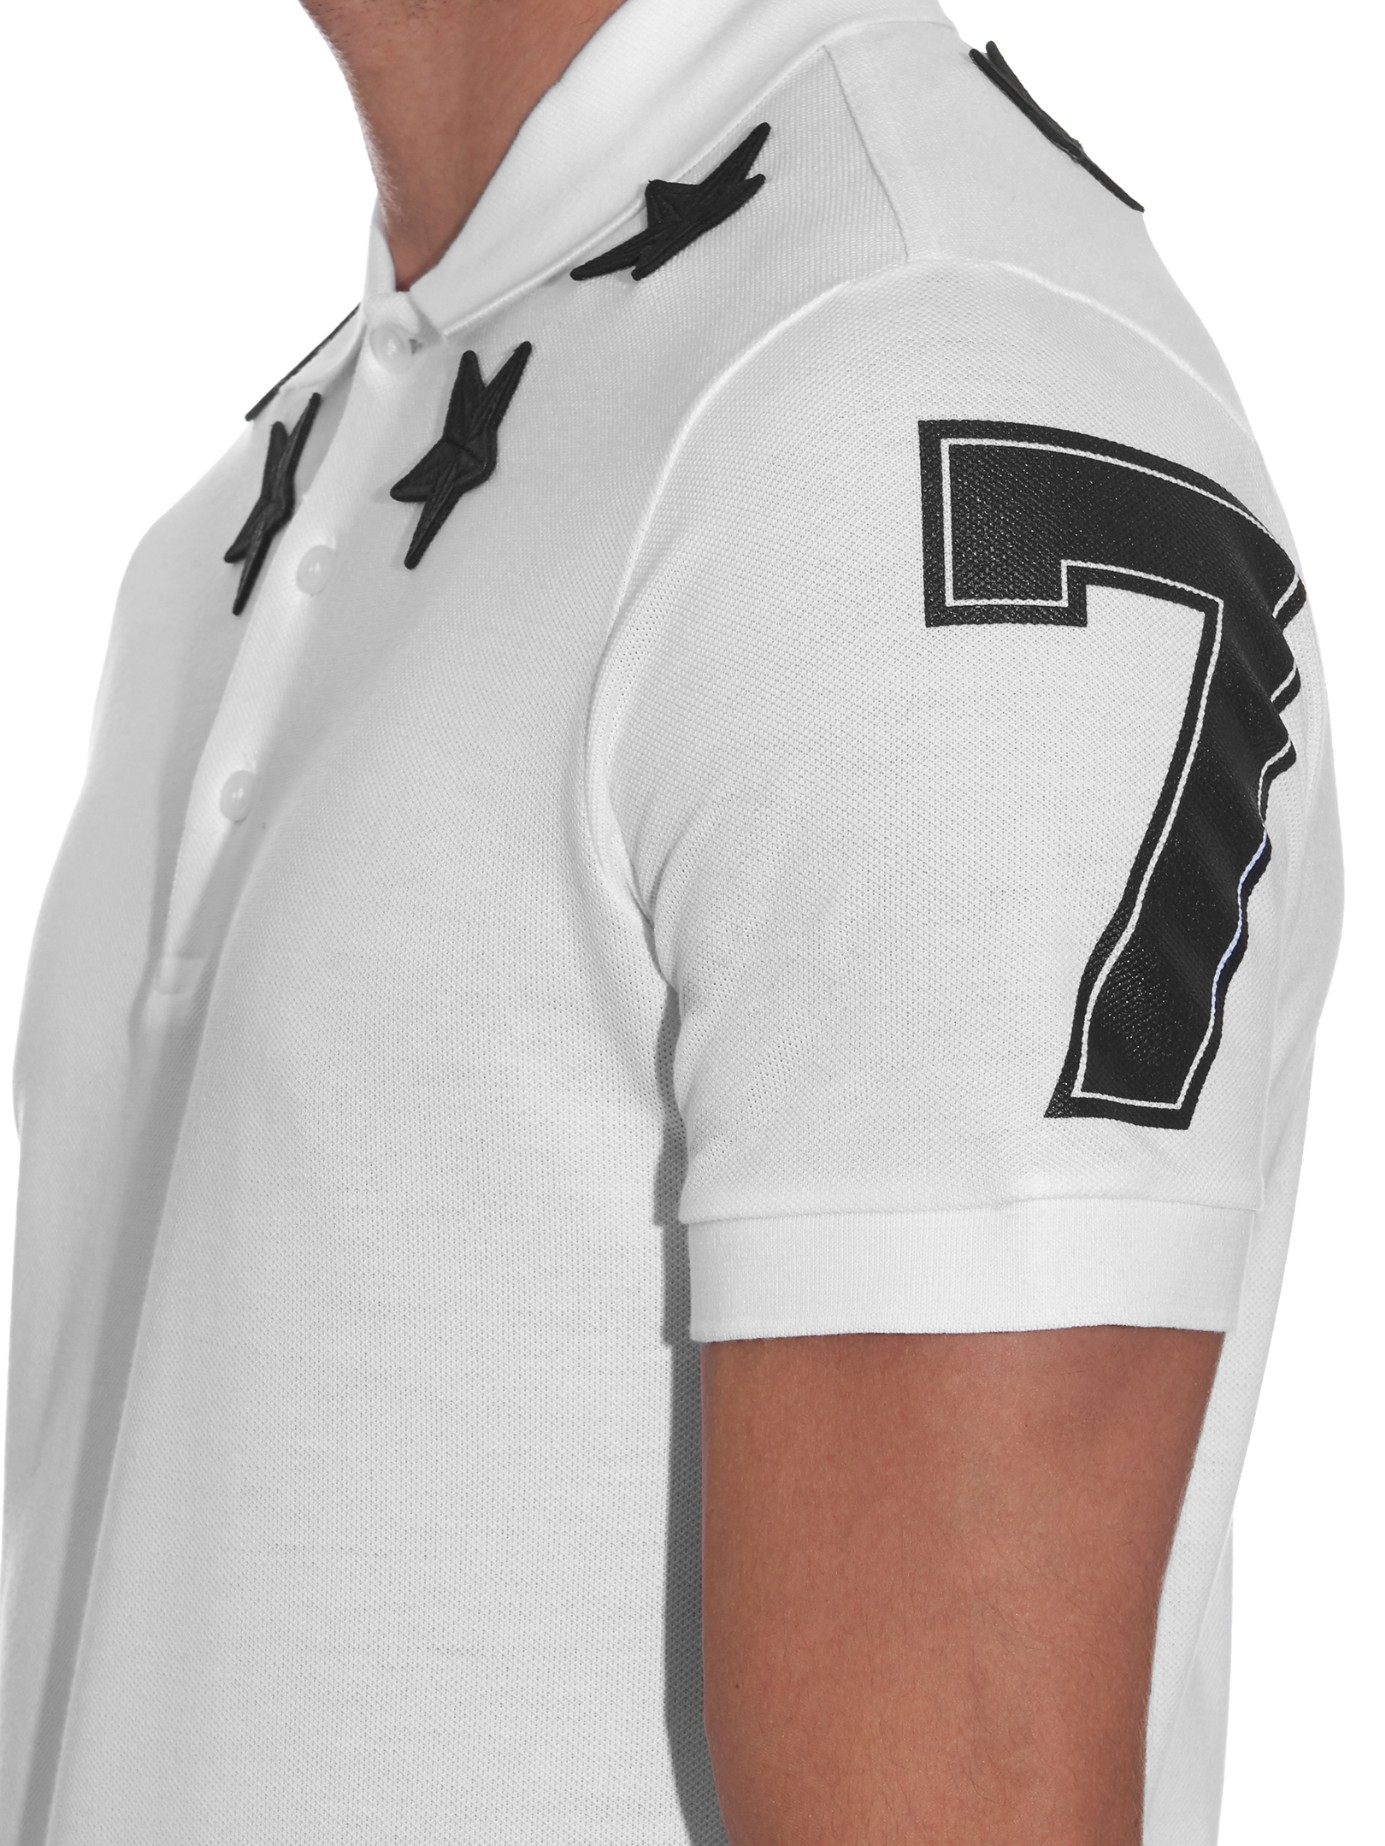 bbf1d548 Givenchy Cuban-fit Star-patch Polo Shirt in White for Men - Lyst